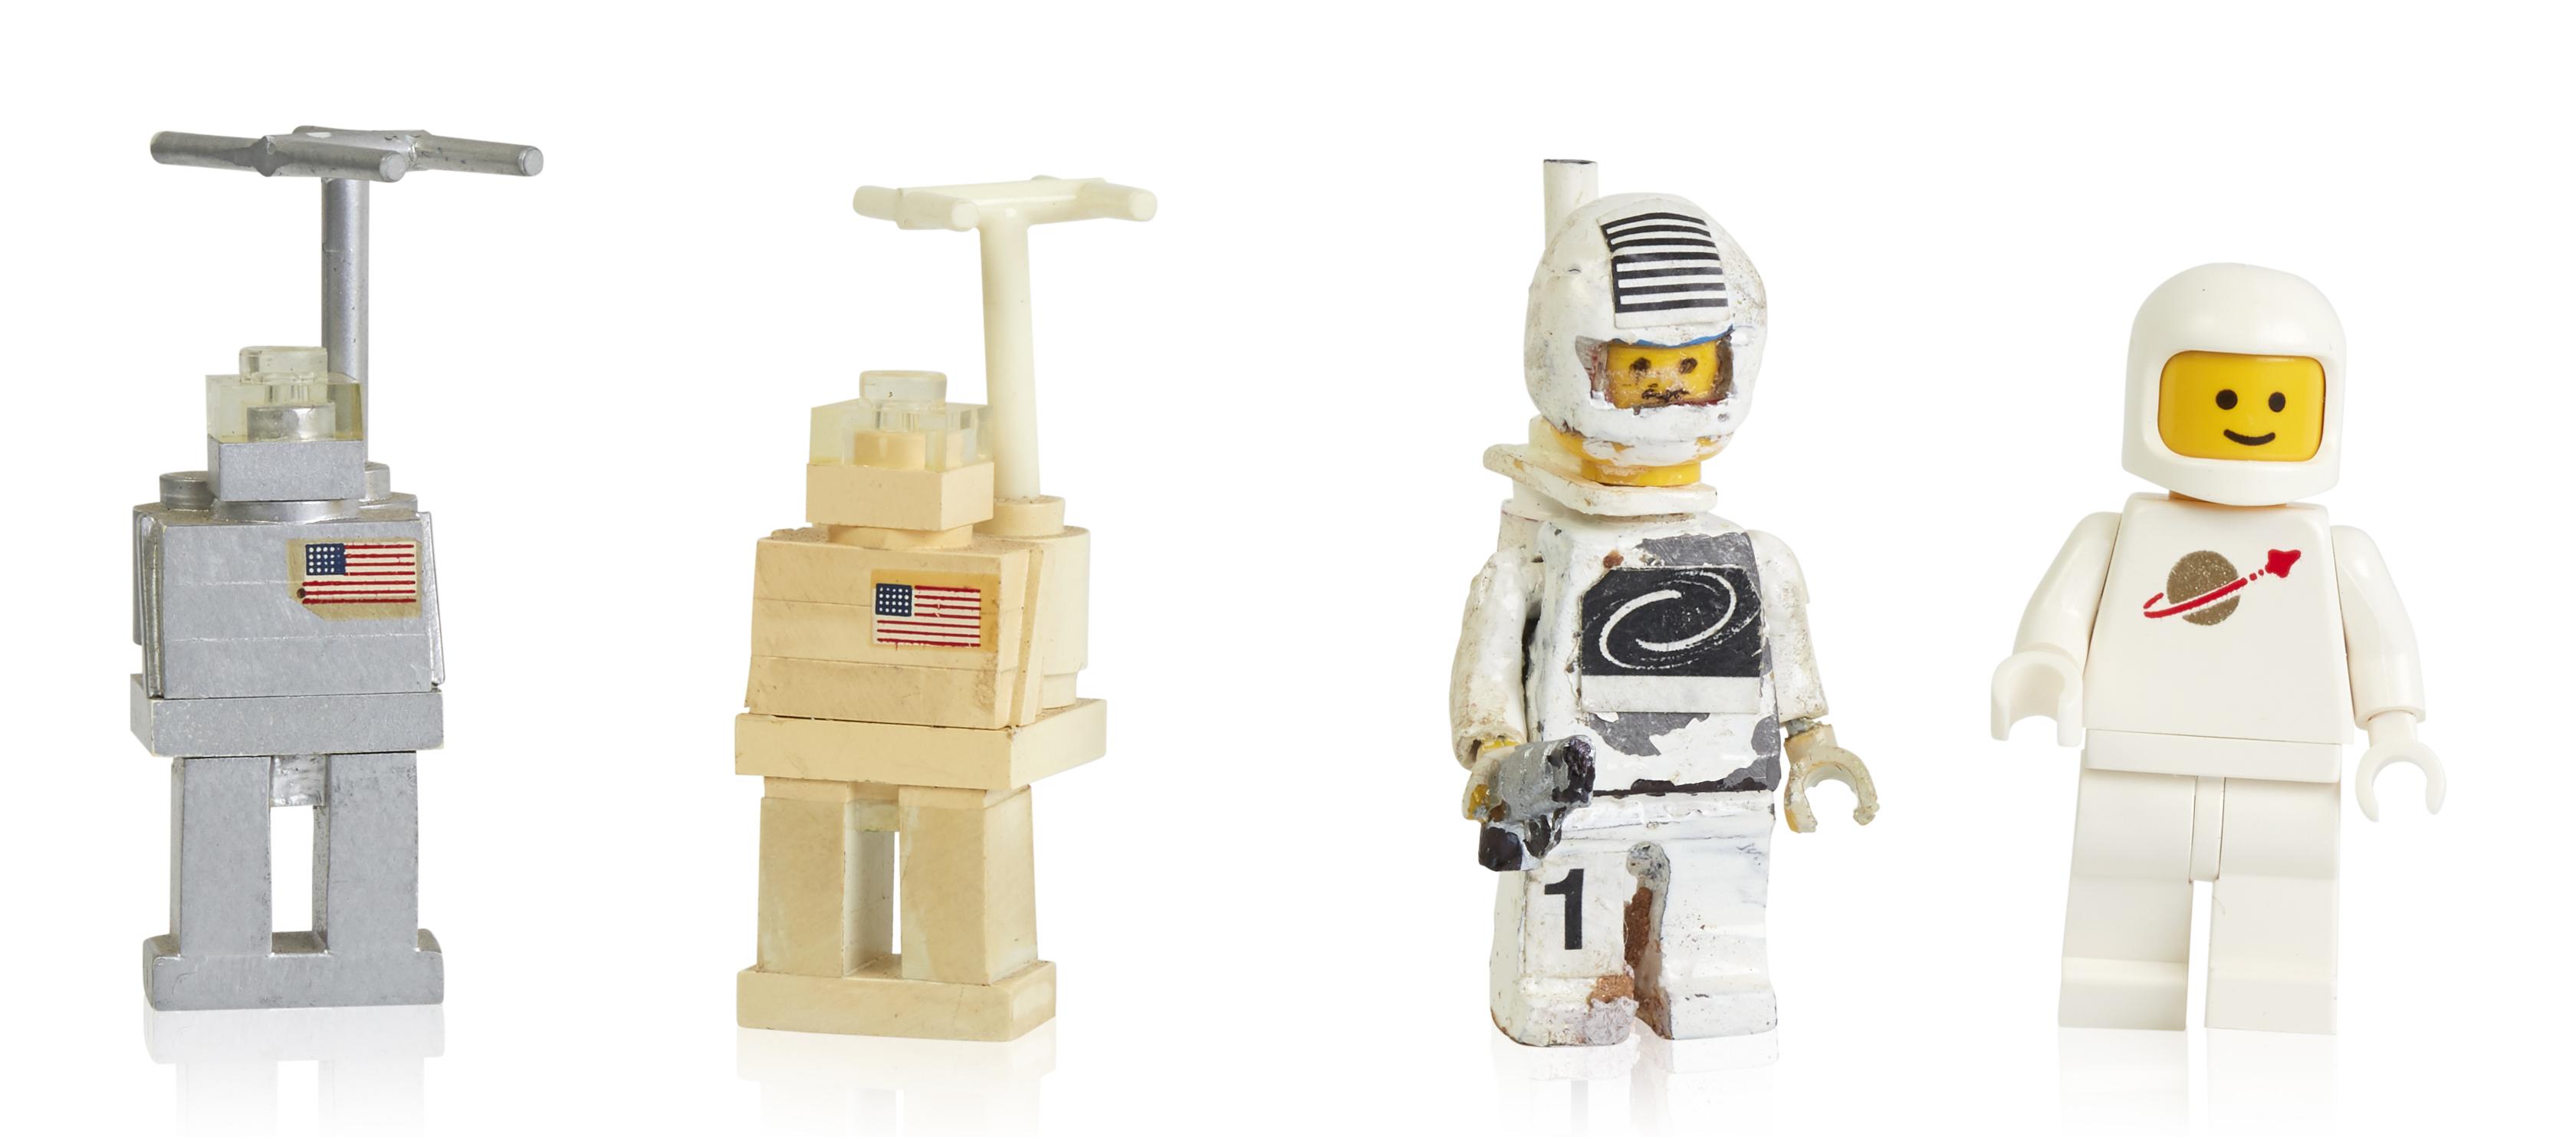 early-prototypes-and-first-space-minifigure.jpg